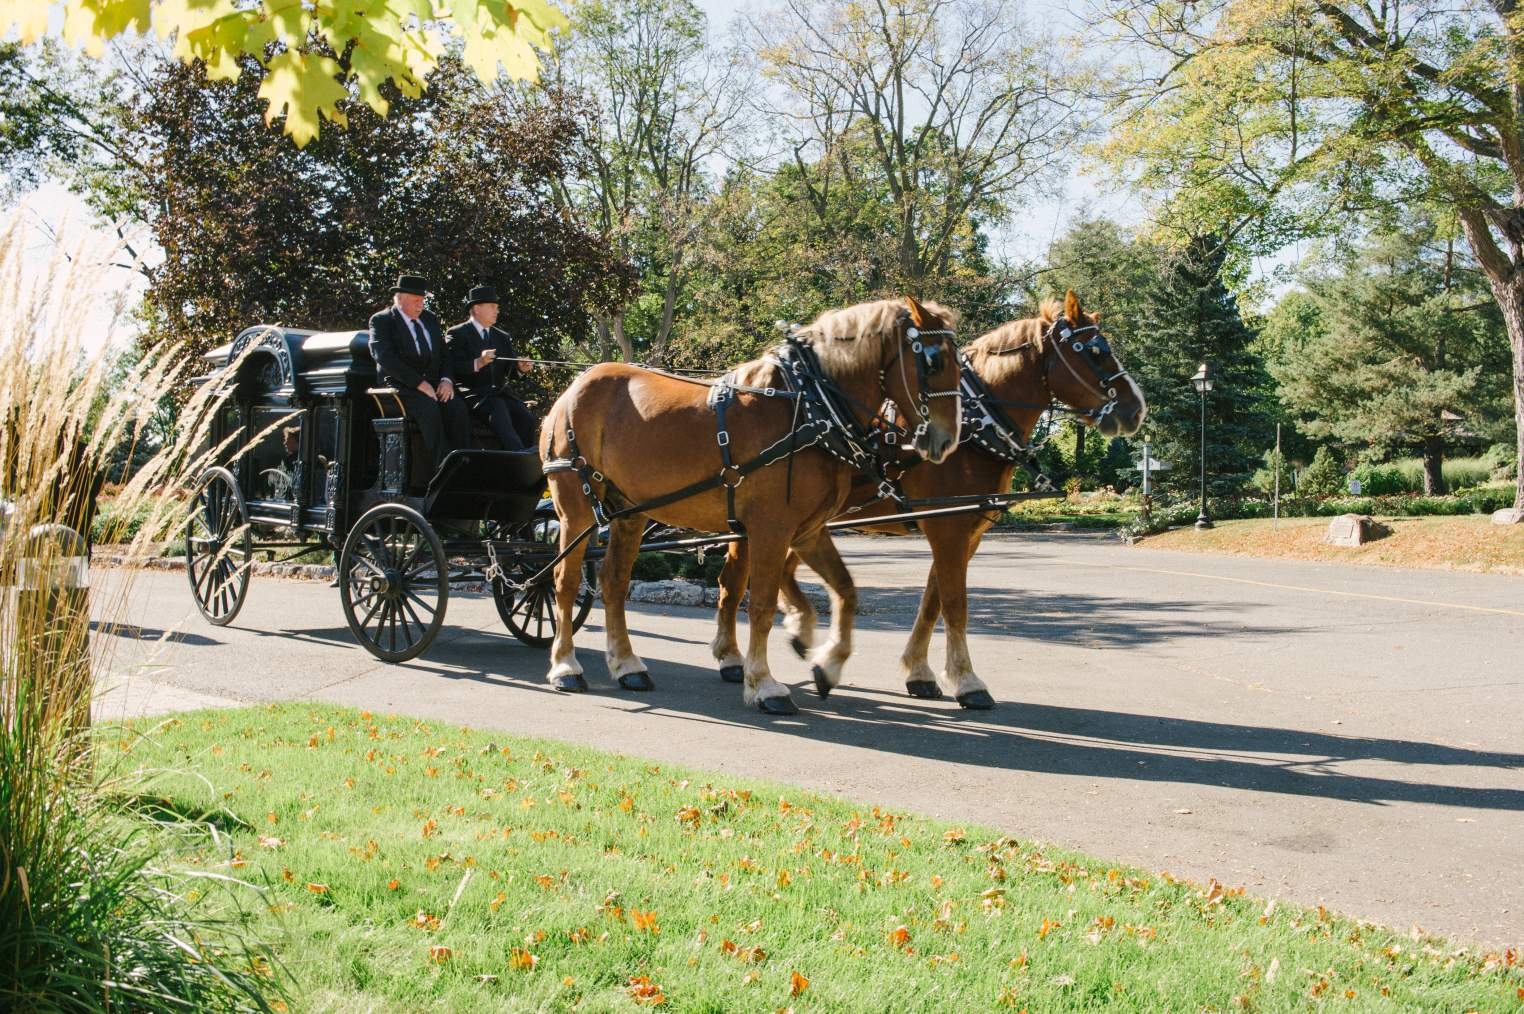 Horse drawn carriage Hurst at Reinterment Service